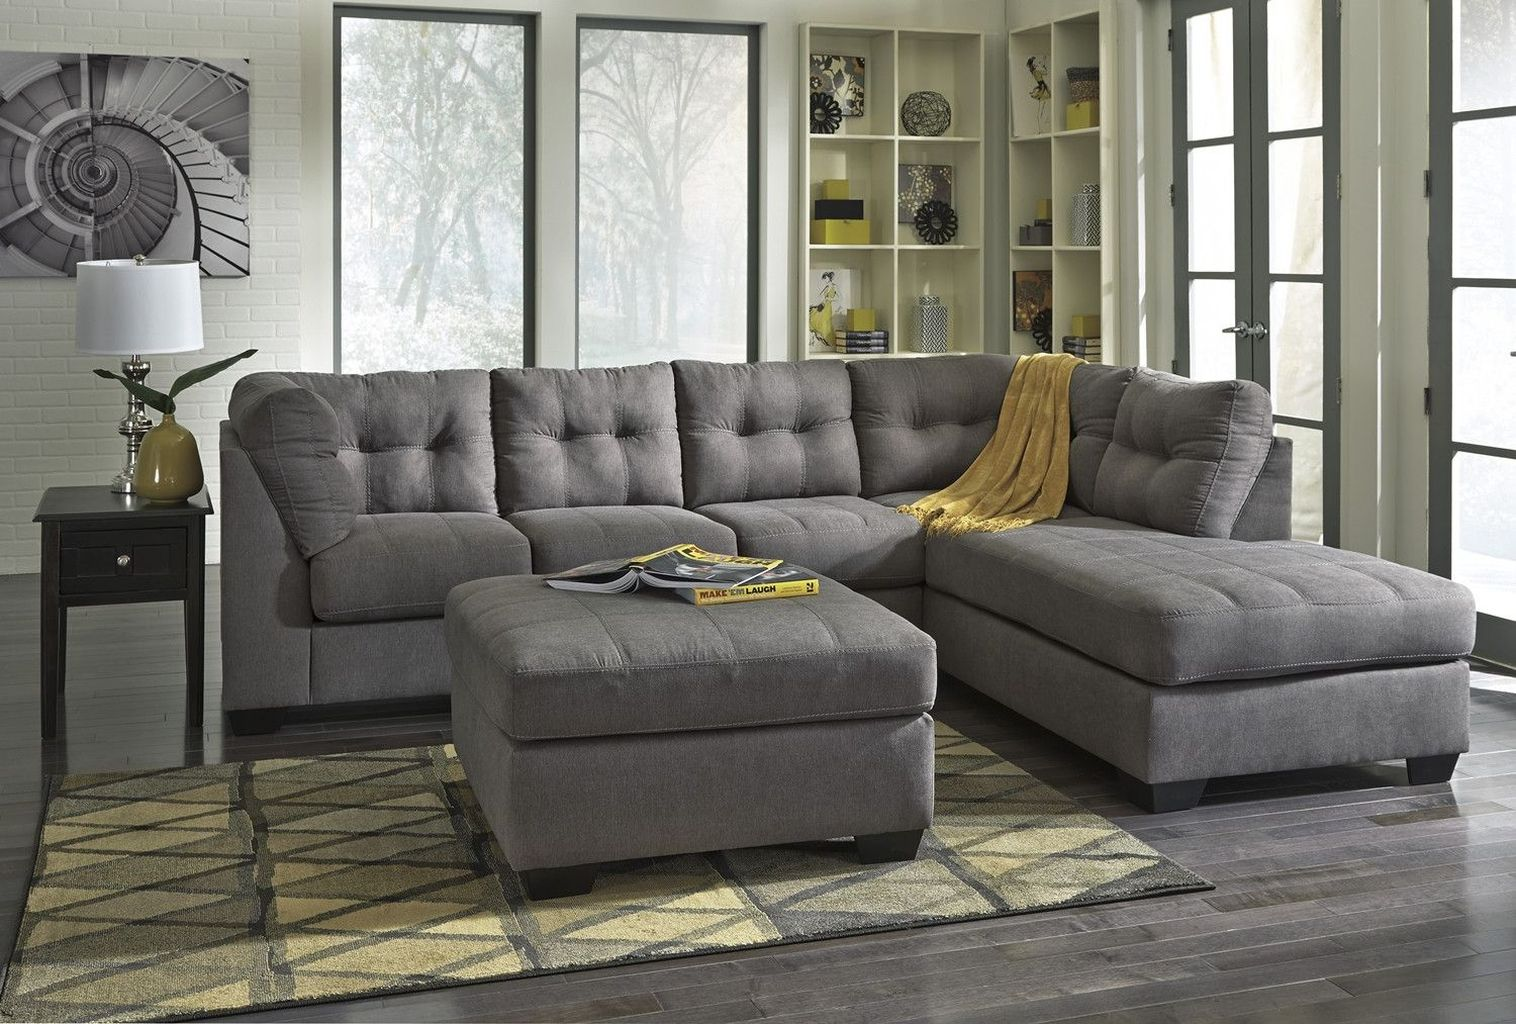 Comfortable Ashley Sectional Sofa Ideas For Living Room 45